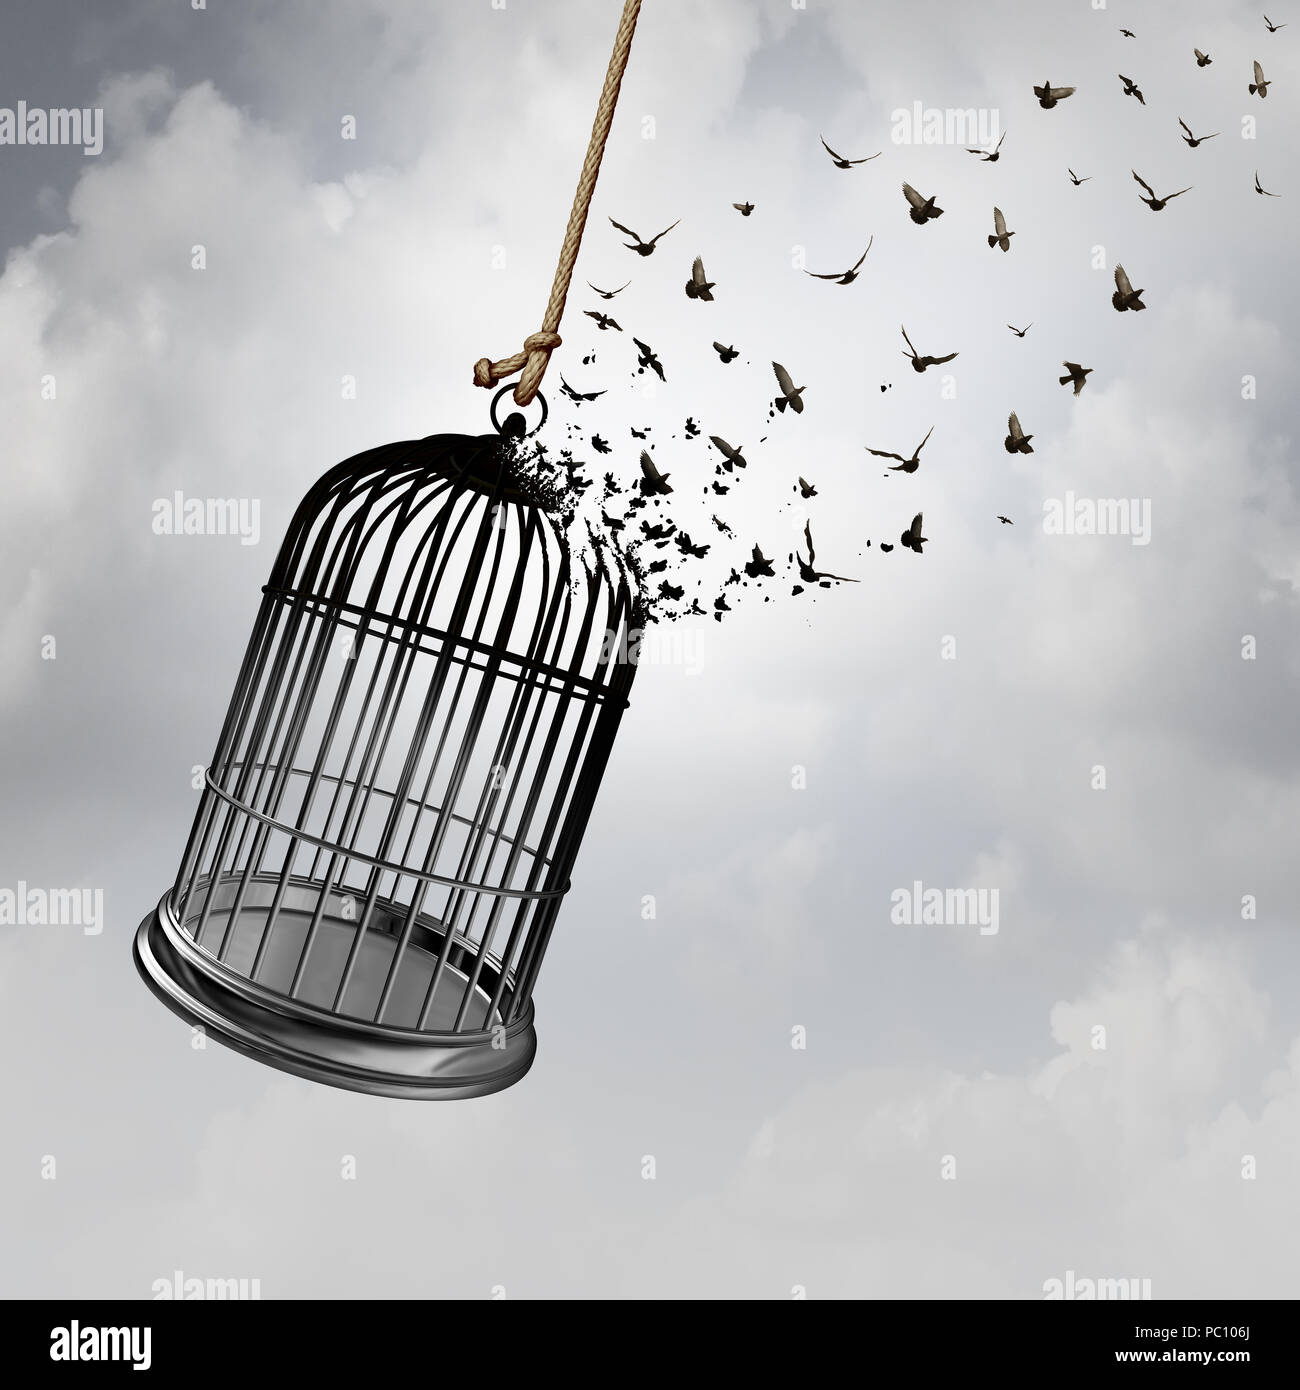 Freedom idea with a birdcage turning into flying birds as a captivity abstract concept with 3D rendering elements. - Stock Image